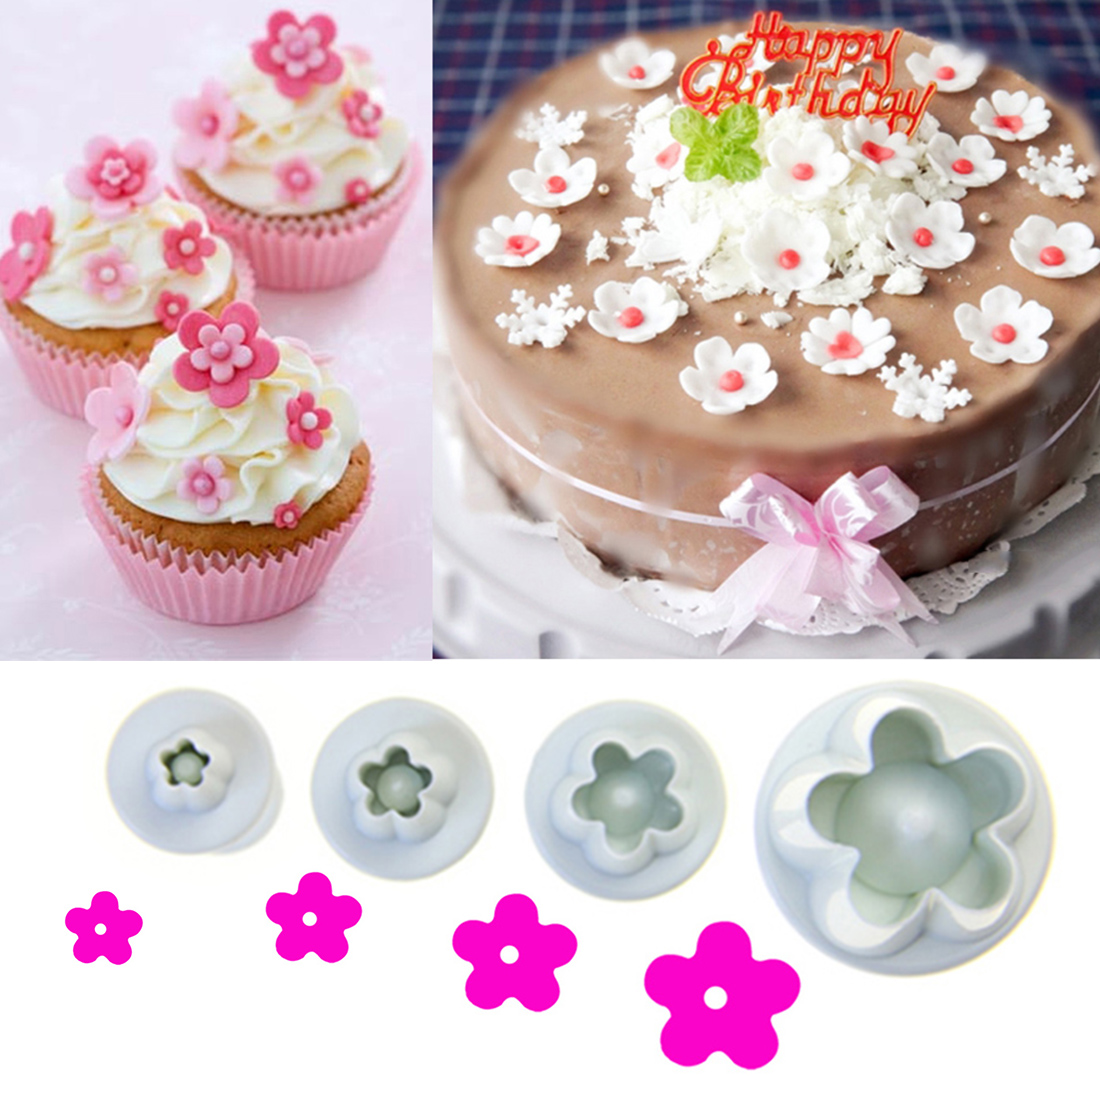 4PCS Plastic Baking Mold Kitchen Biscuit Cookie Cutter Pastry Plunger 3D Stamp Die Fondant Cake Decorating Tools